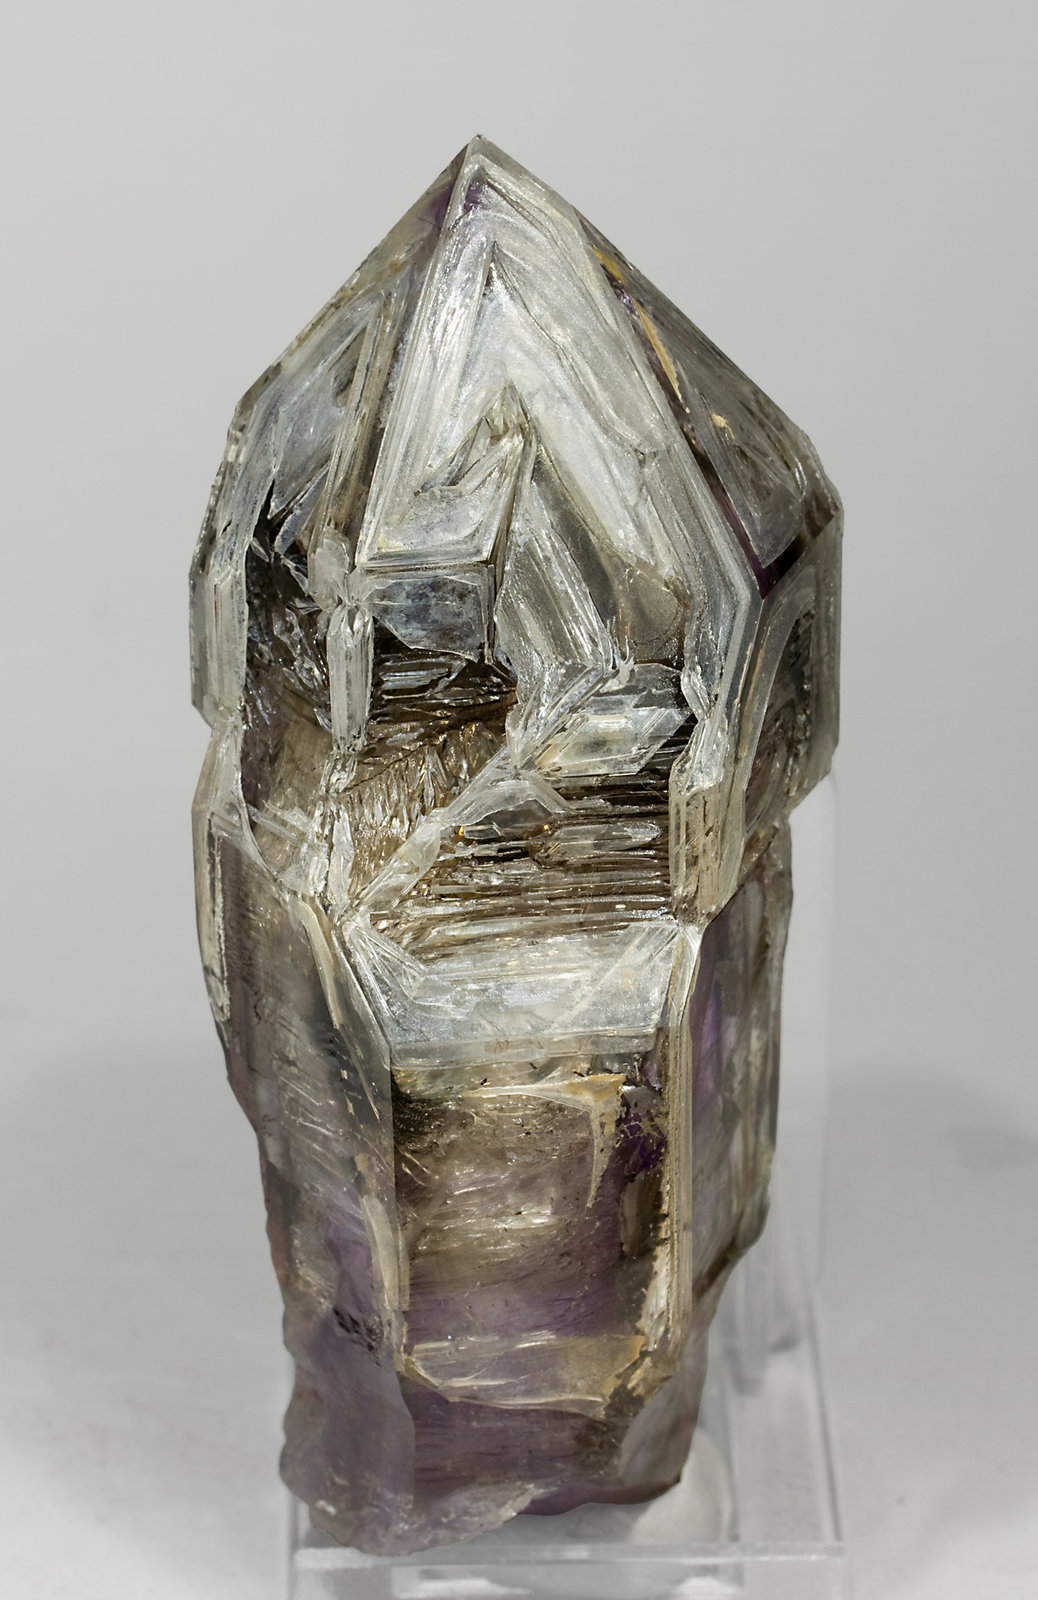 specimens/s_imagesS5/Quartz_Amethyst-TF91S5r.jpg